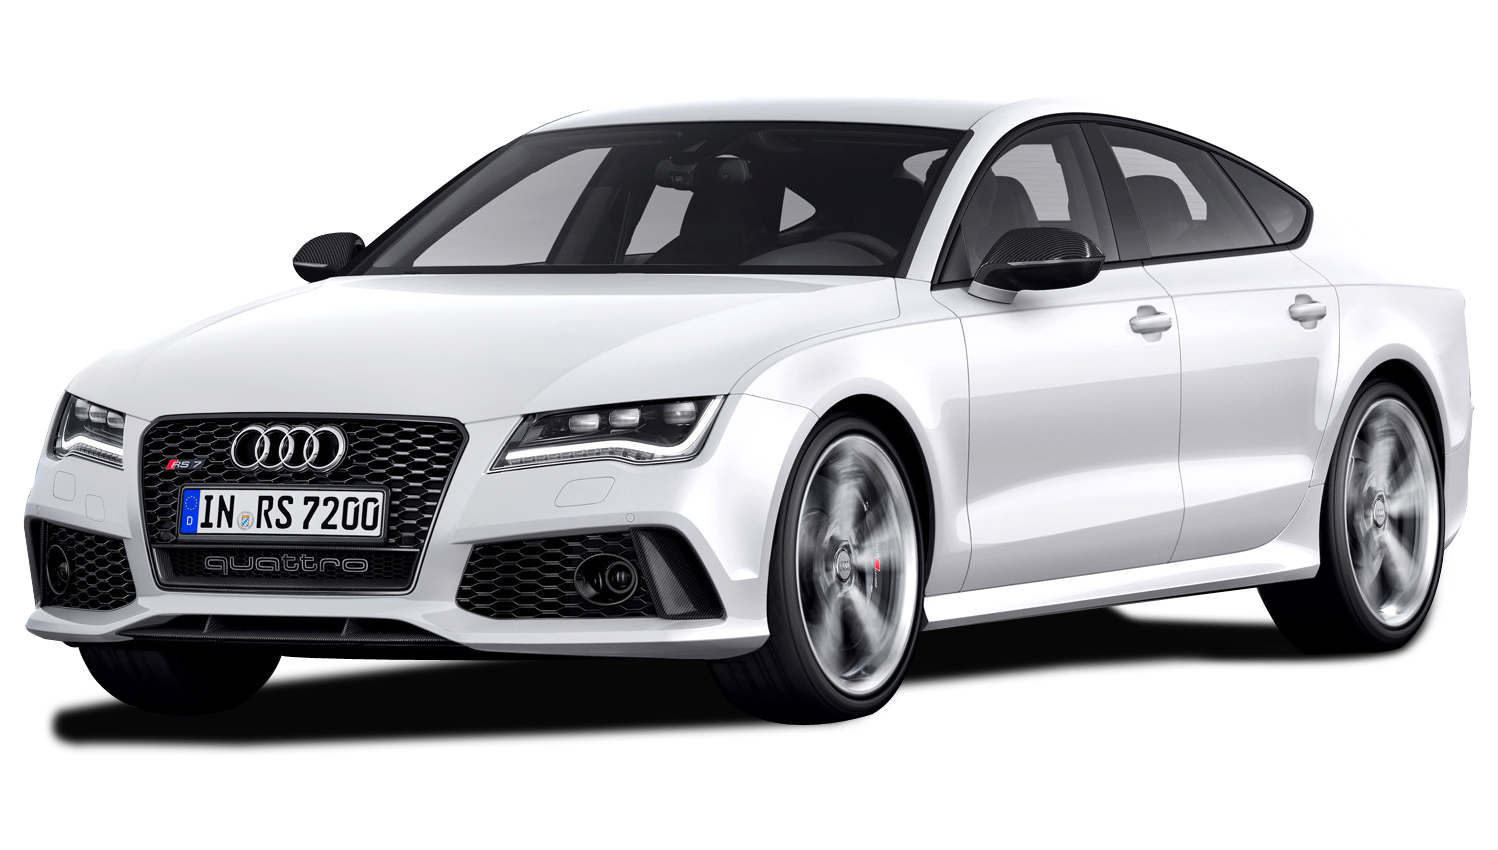 Audi RS7 PNG Image Pictures image #45298